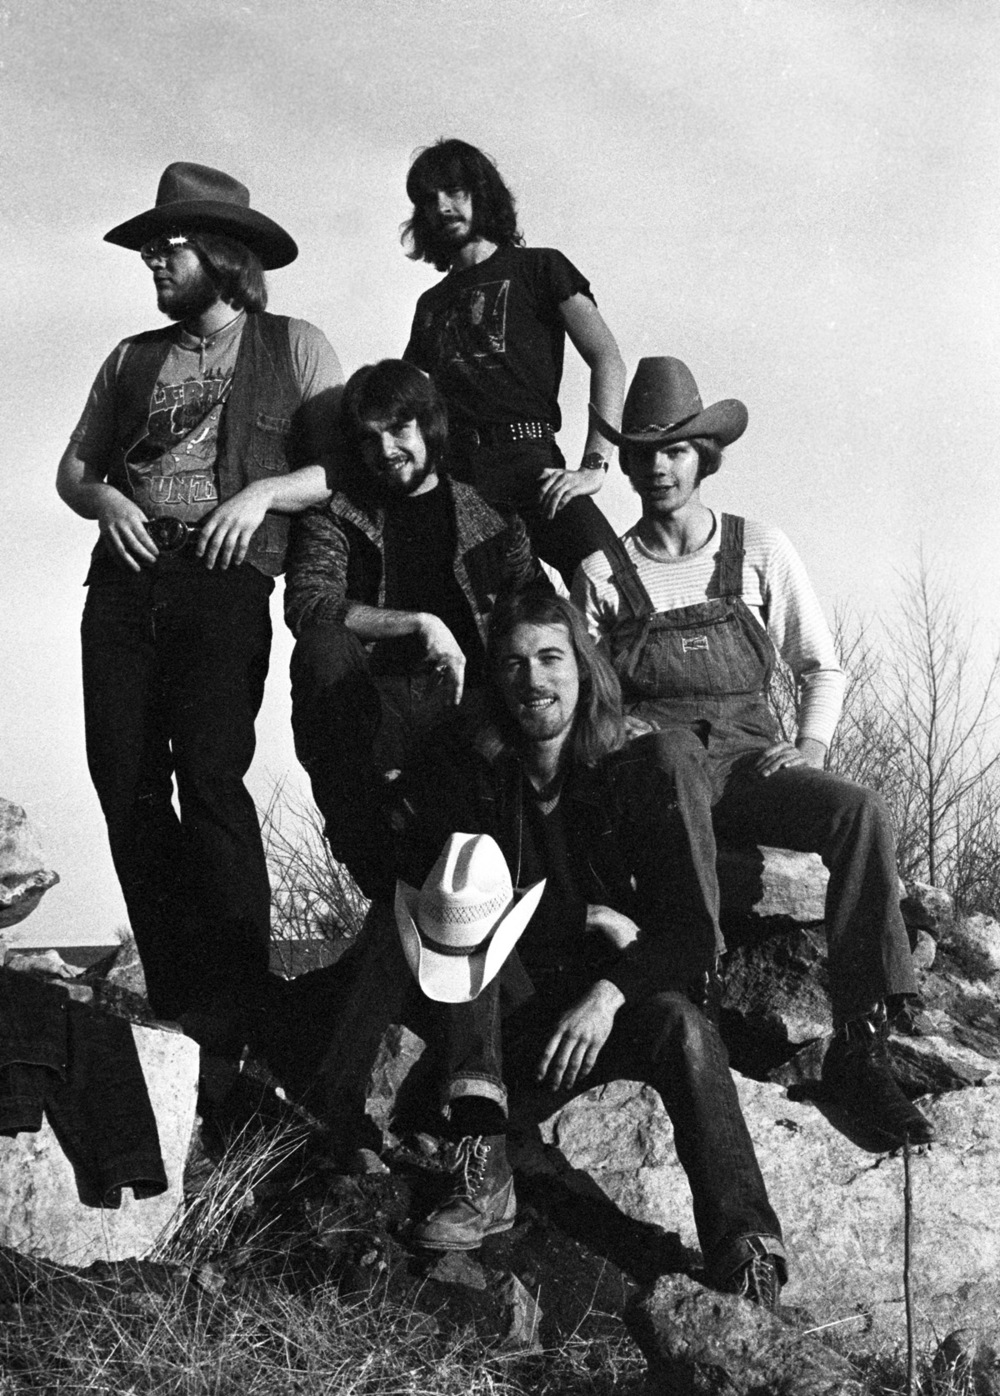 The Amazing Jackalopes circa 1977 (l-r): Drummer Jack Propps, Bassist Jeff Donachy,  Keyboardist Brian Wilson,  Guitarist Jeff Hett and Guitarist Jack Clift.